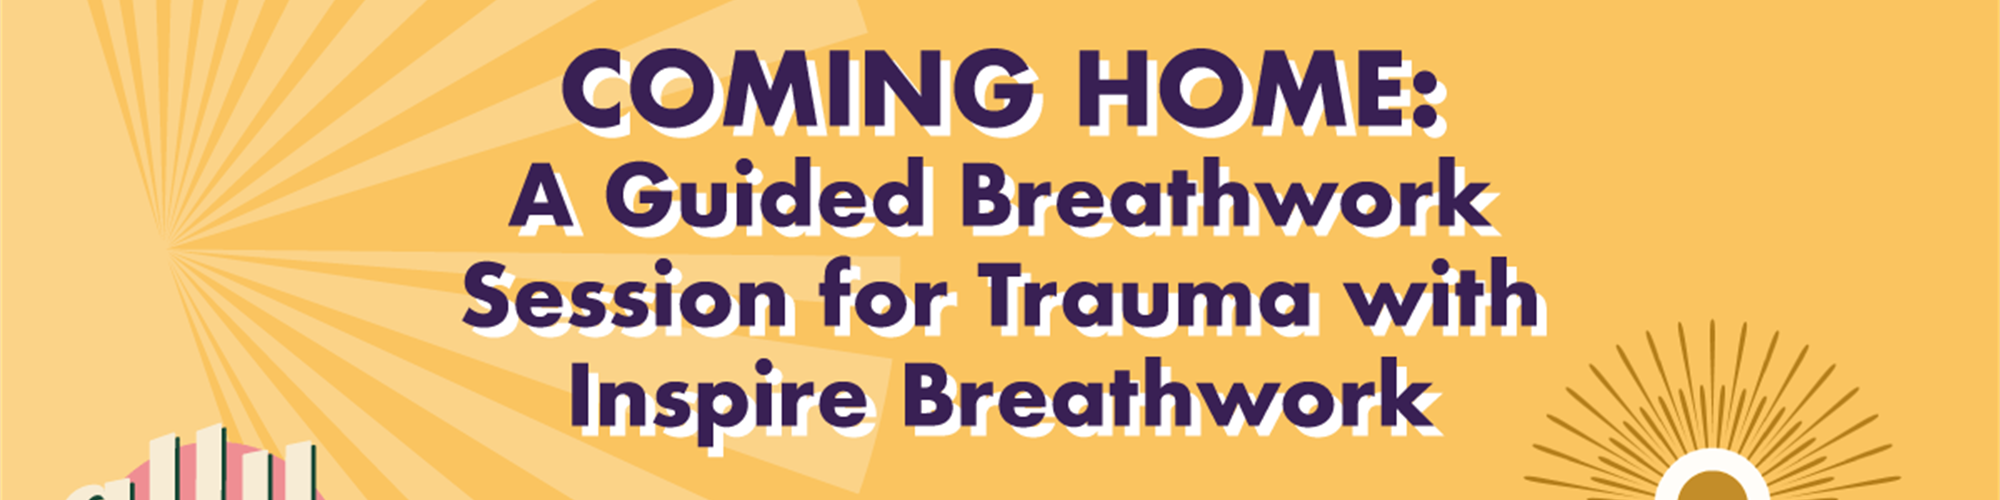 Coming Home: A Guided Breathwork Session for Trauma with Inspire Breathwork